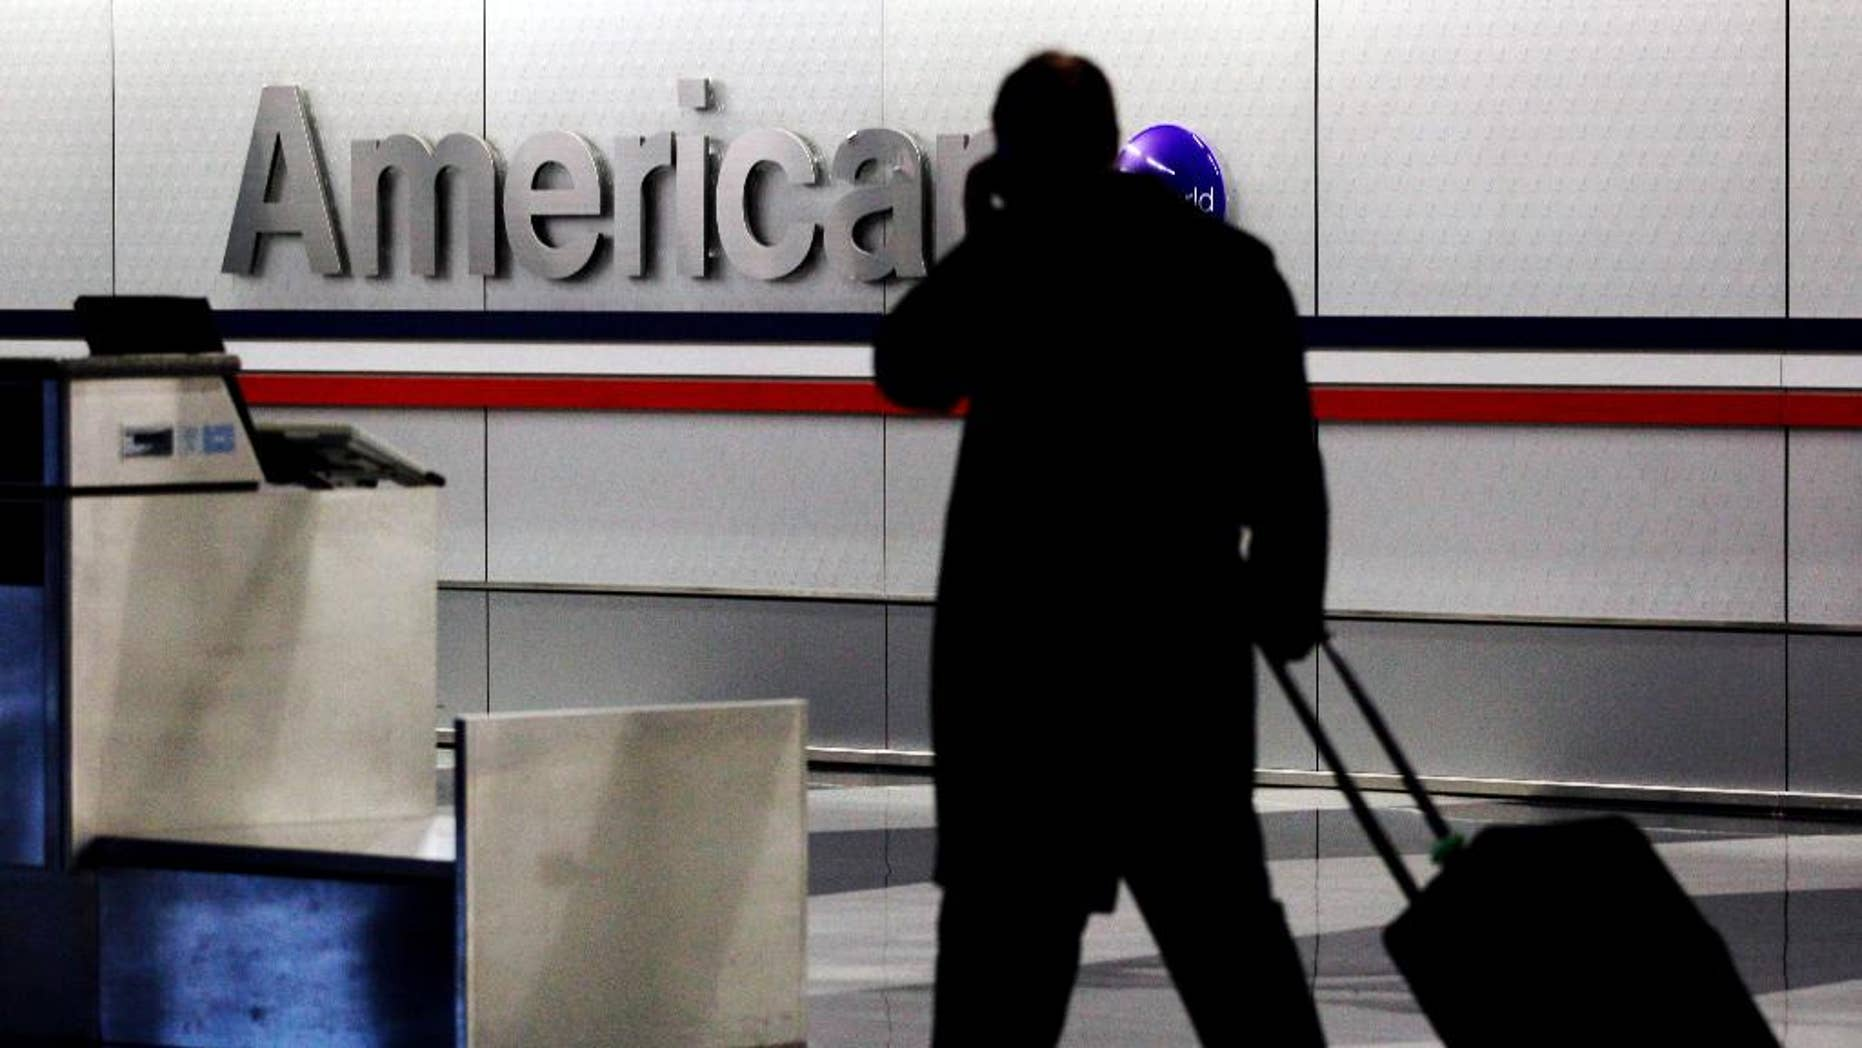 American and US Airways announced changes to their policies on checked-bag fees and redeeming miles for free flights.